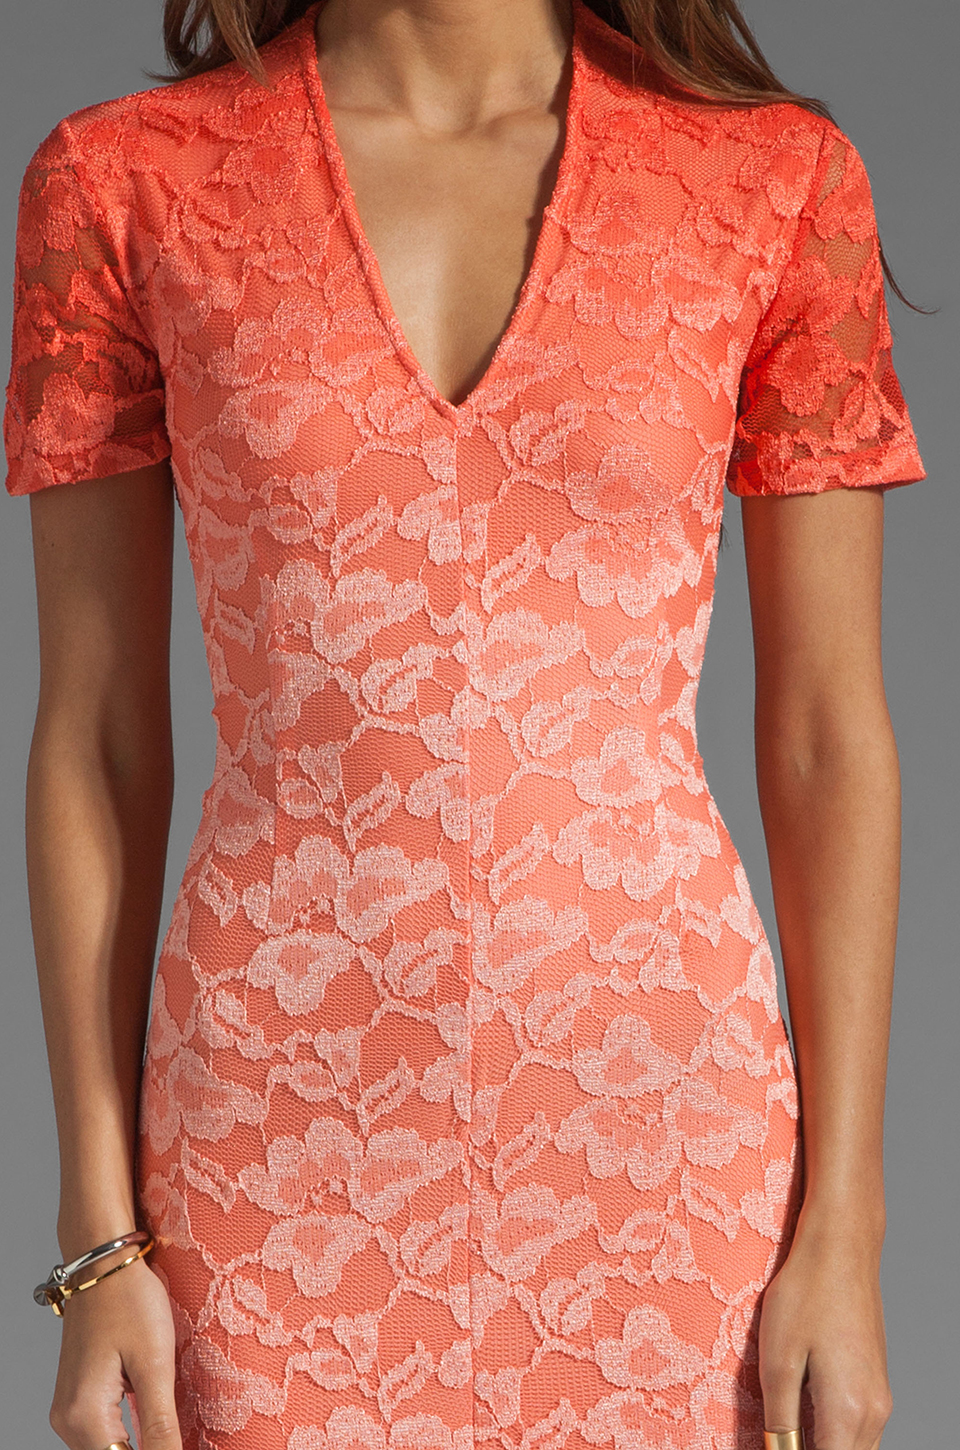 Dolce Vita Alexis Stretch Lace Dress in Pink Ombre